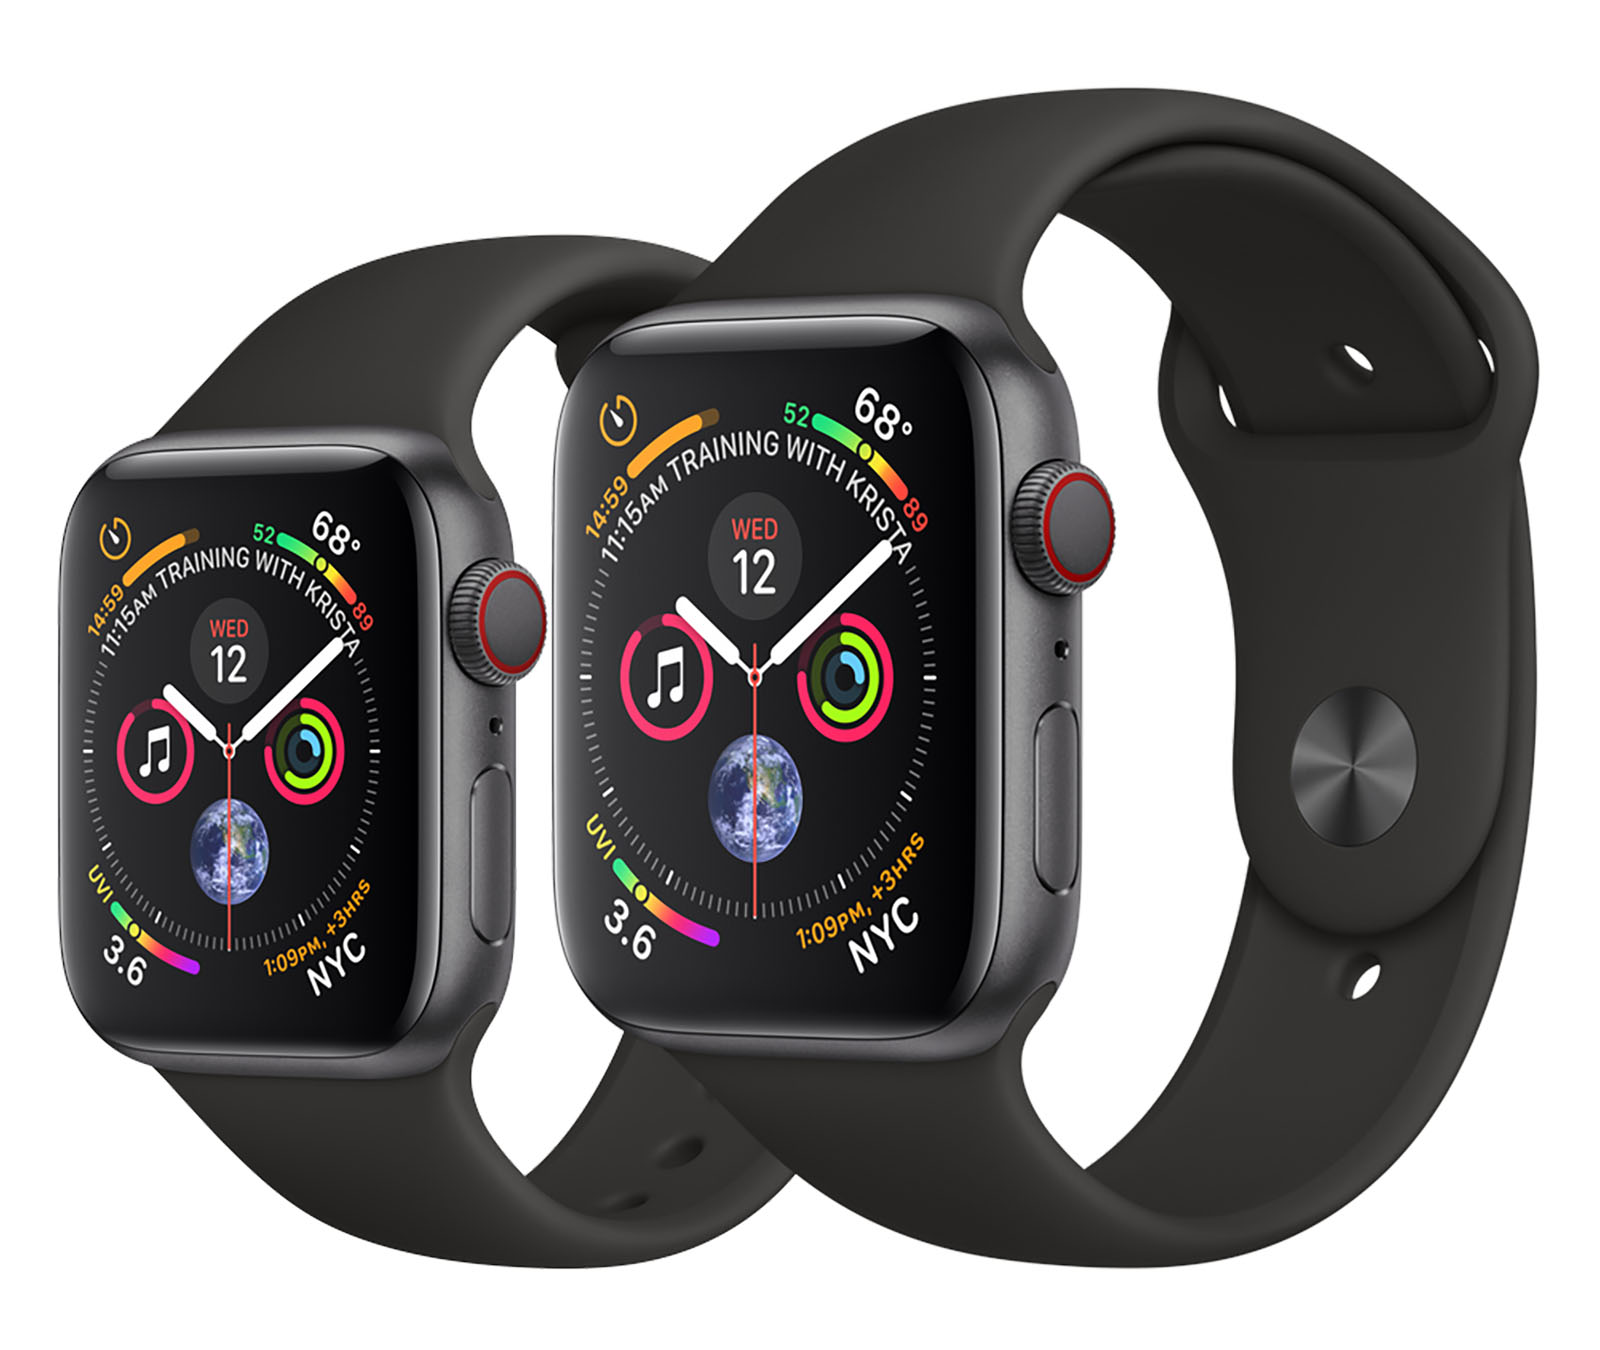 Apple Watch has come a long way in less than five years